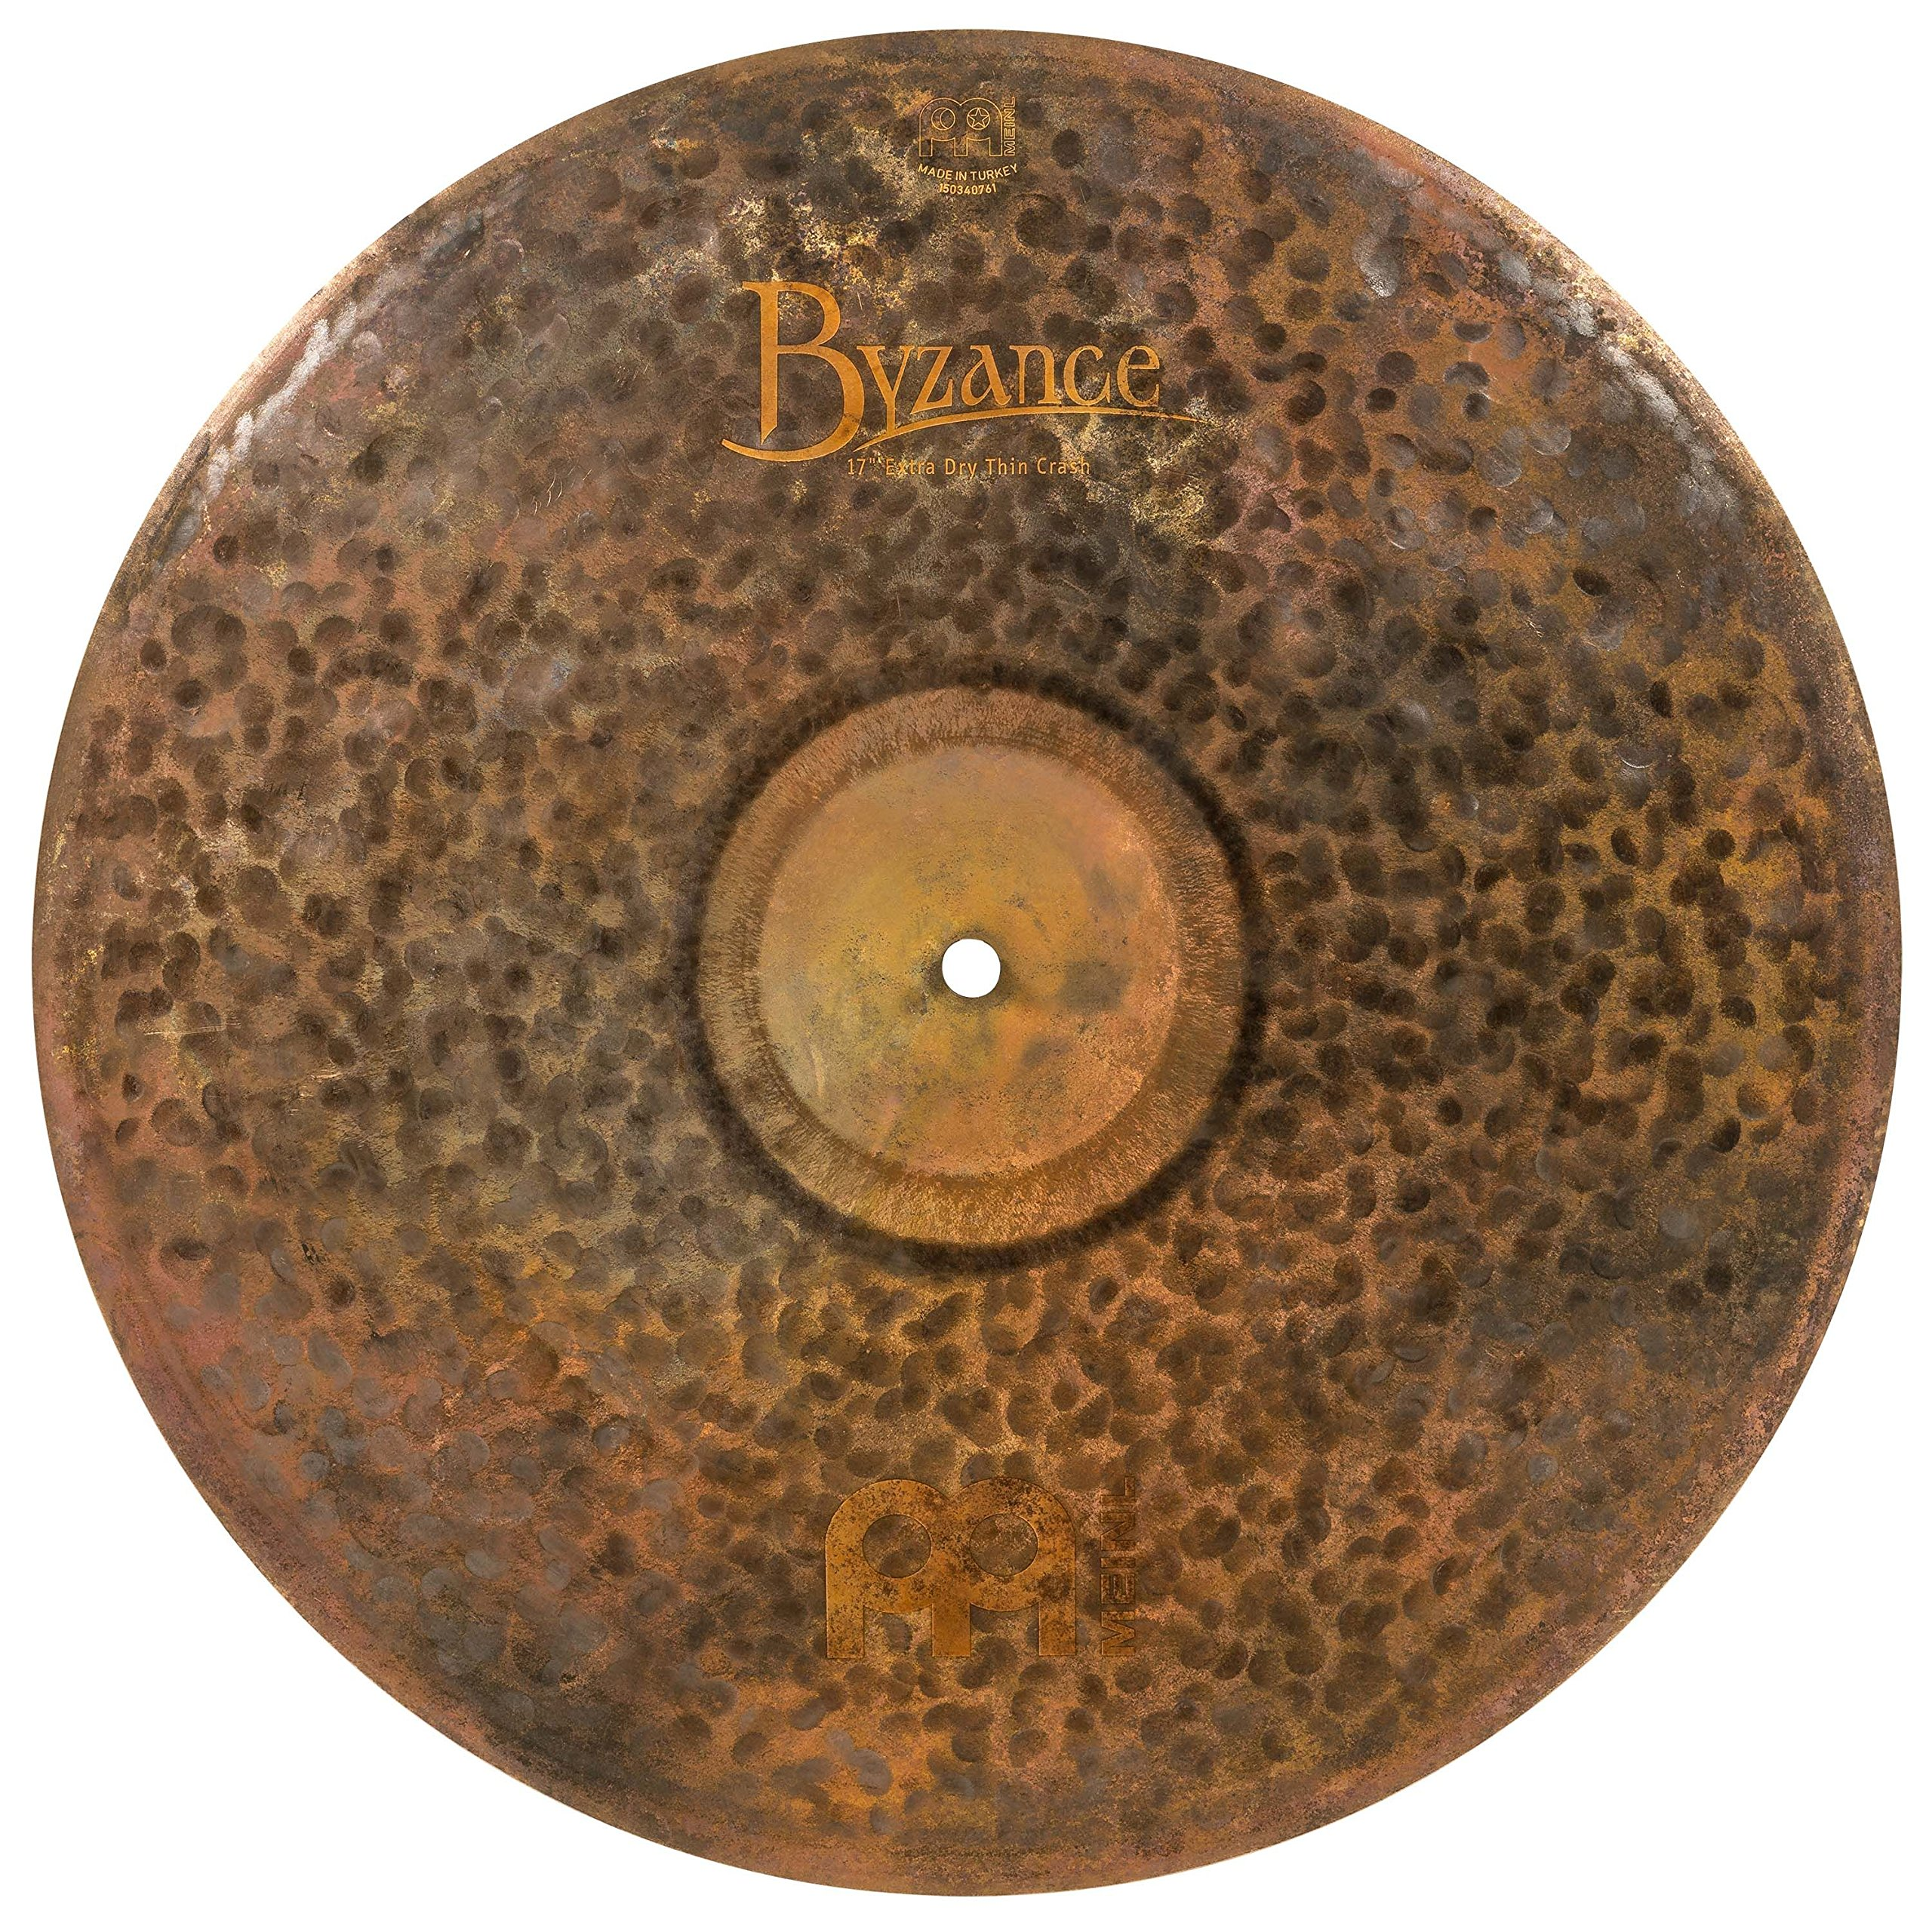 Meinl Cymbals B17EDTC Byzance 17-Inch Extra Dry Thin Crash Cymbal (VIDEO) by Meinl Cymbals